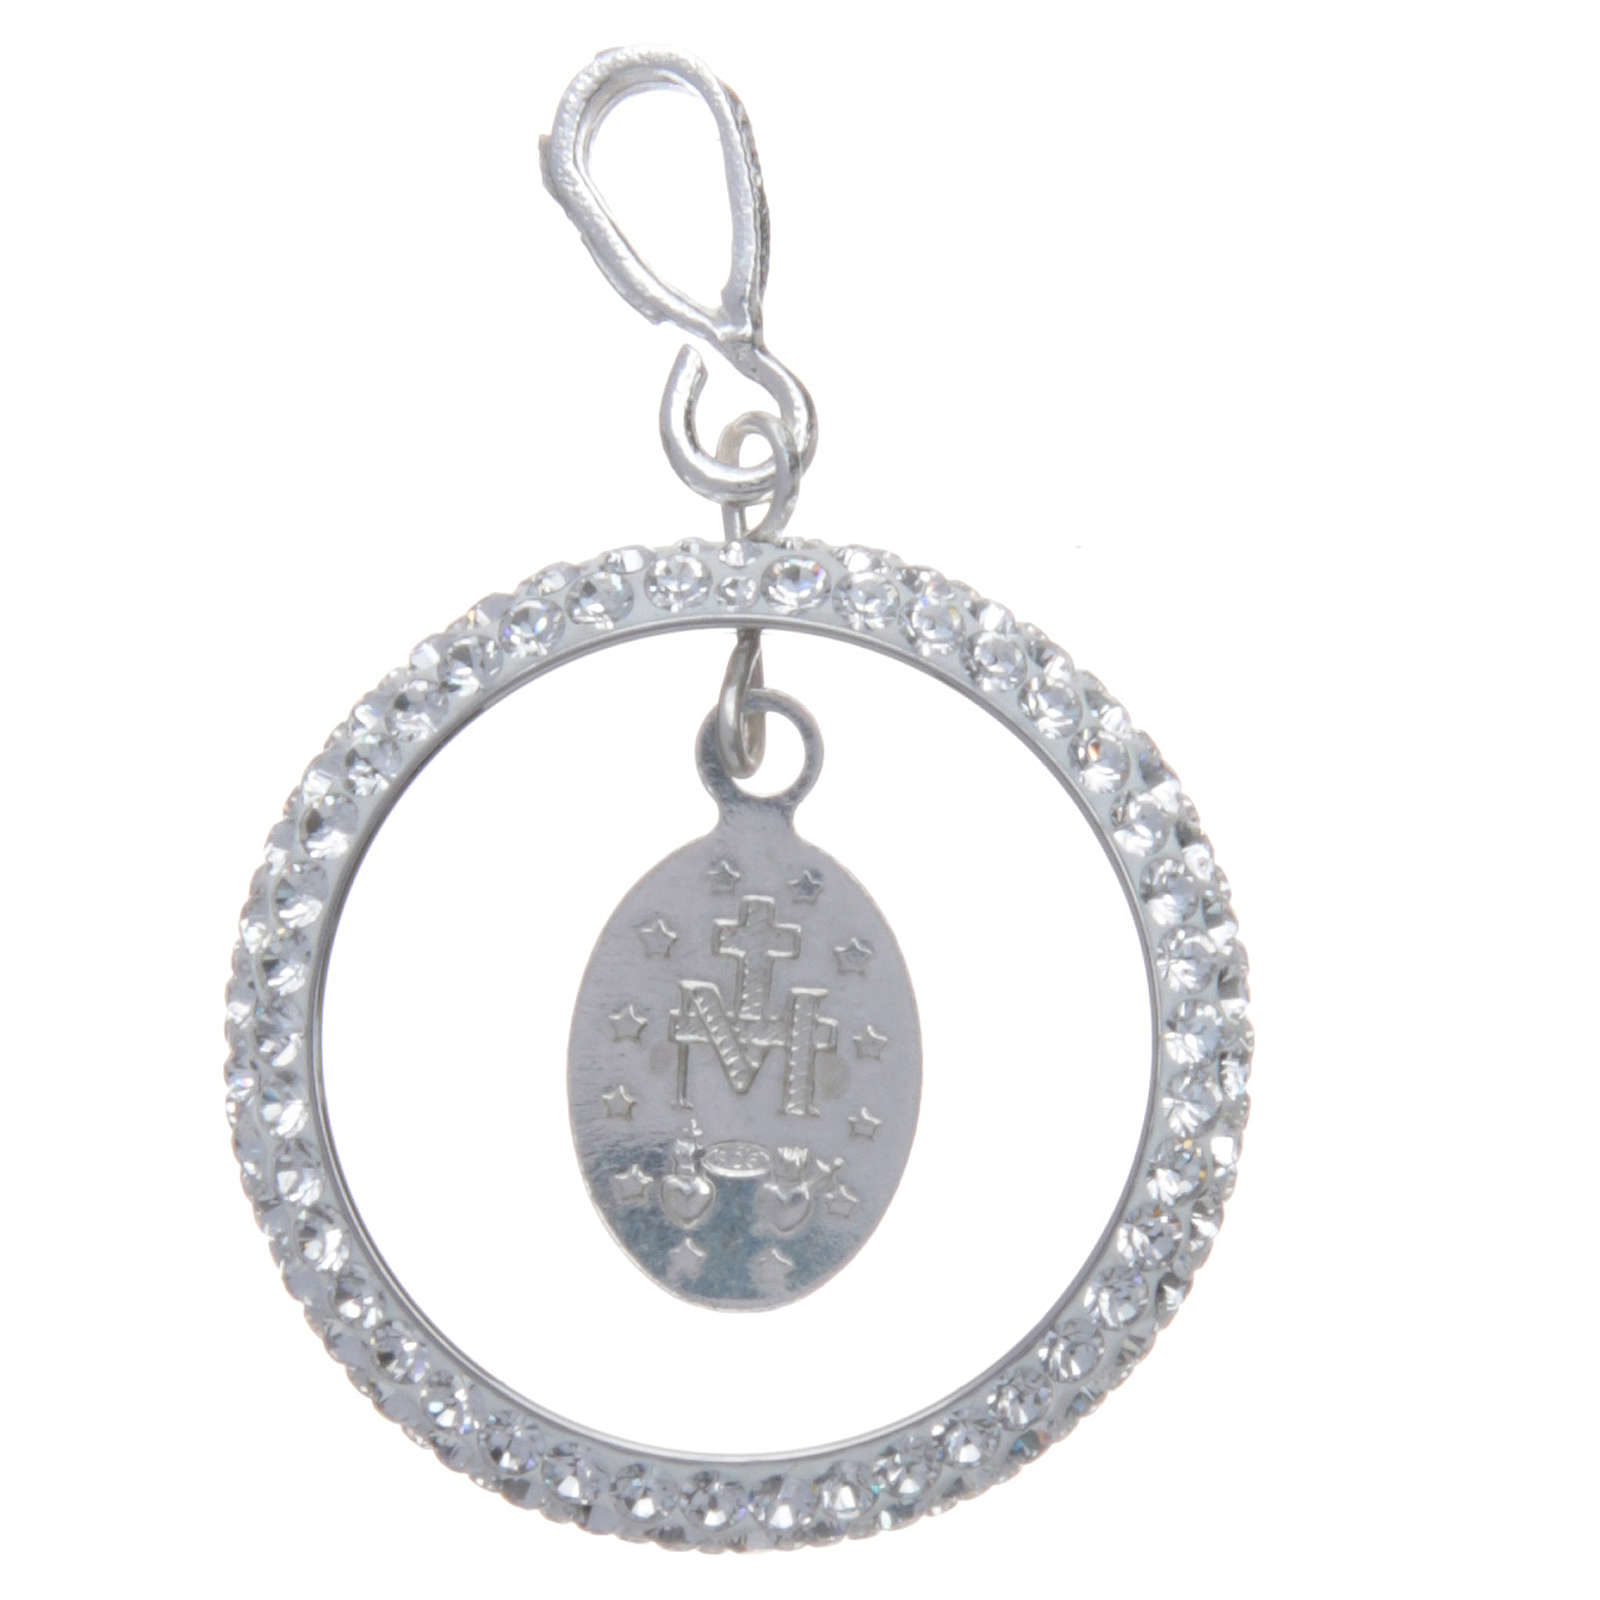 Charm With Sett Ring And Miraculous Medal In Sterling Silver